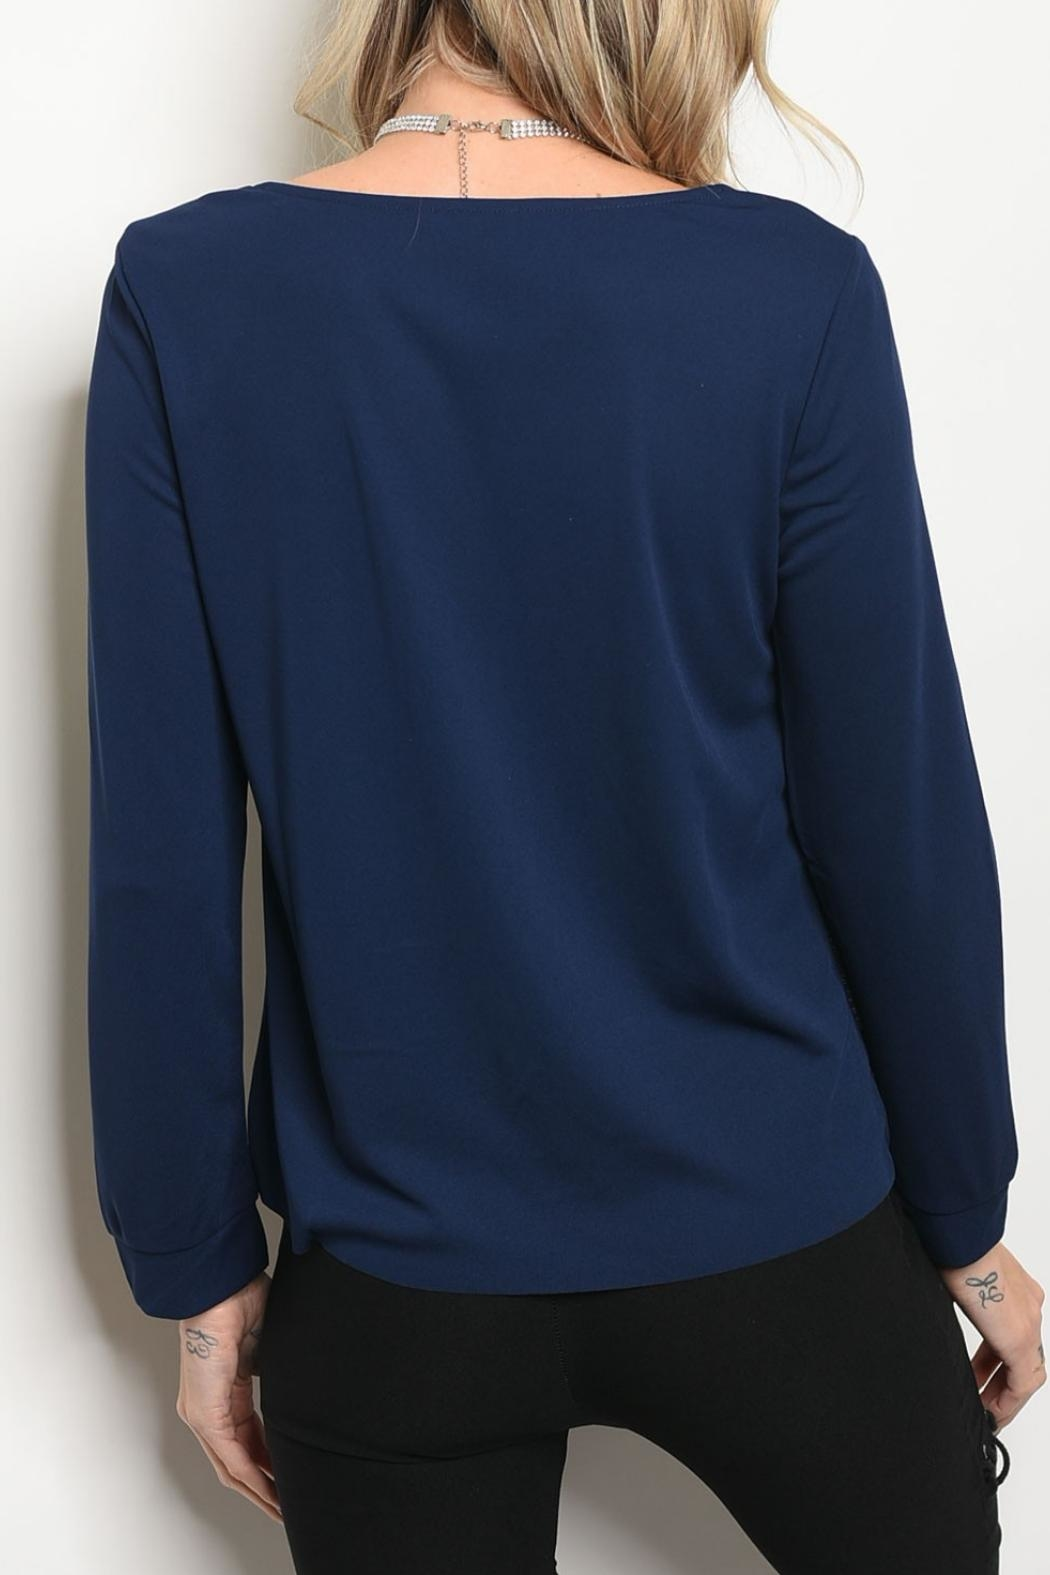 Christy & Co. Navy Silver Top - Front Full Image